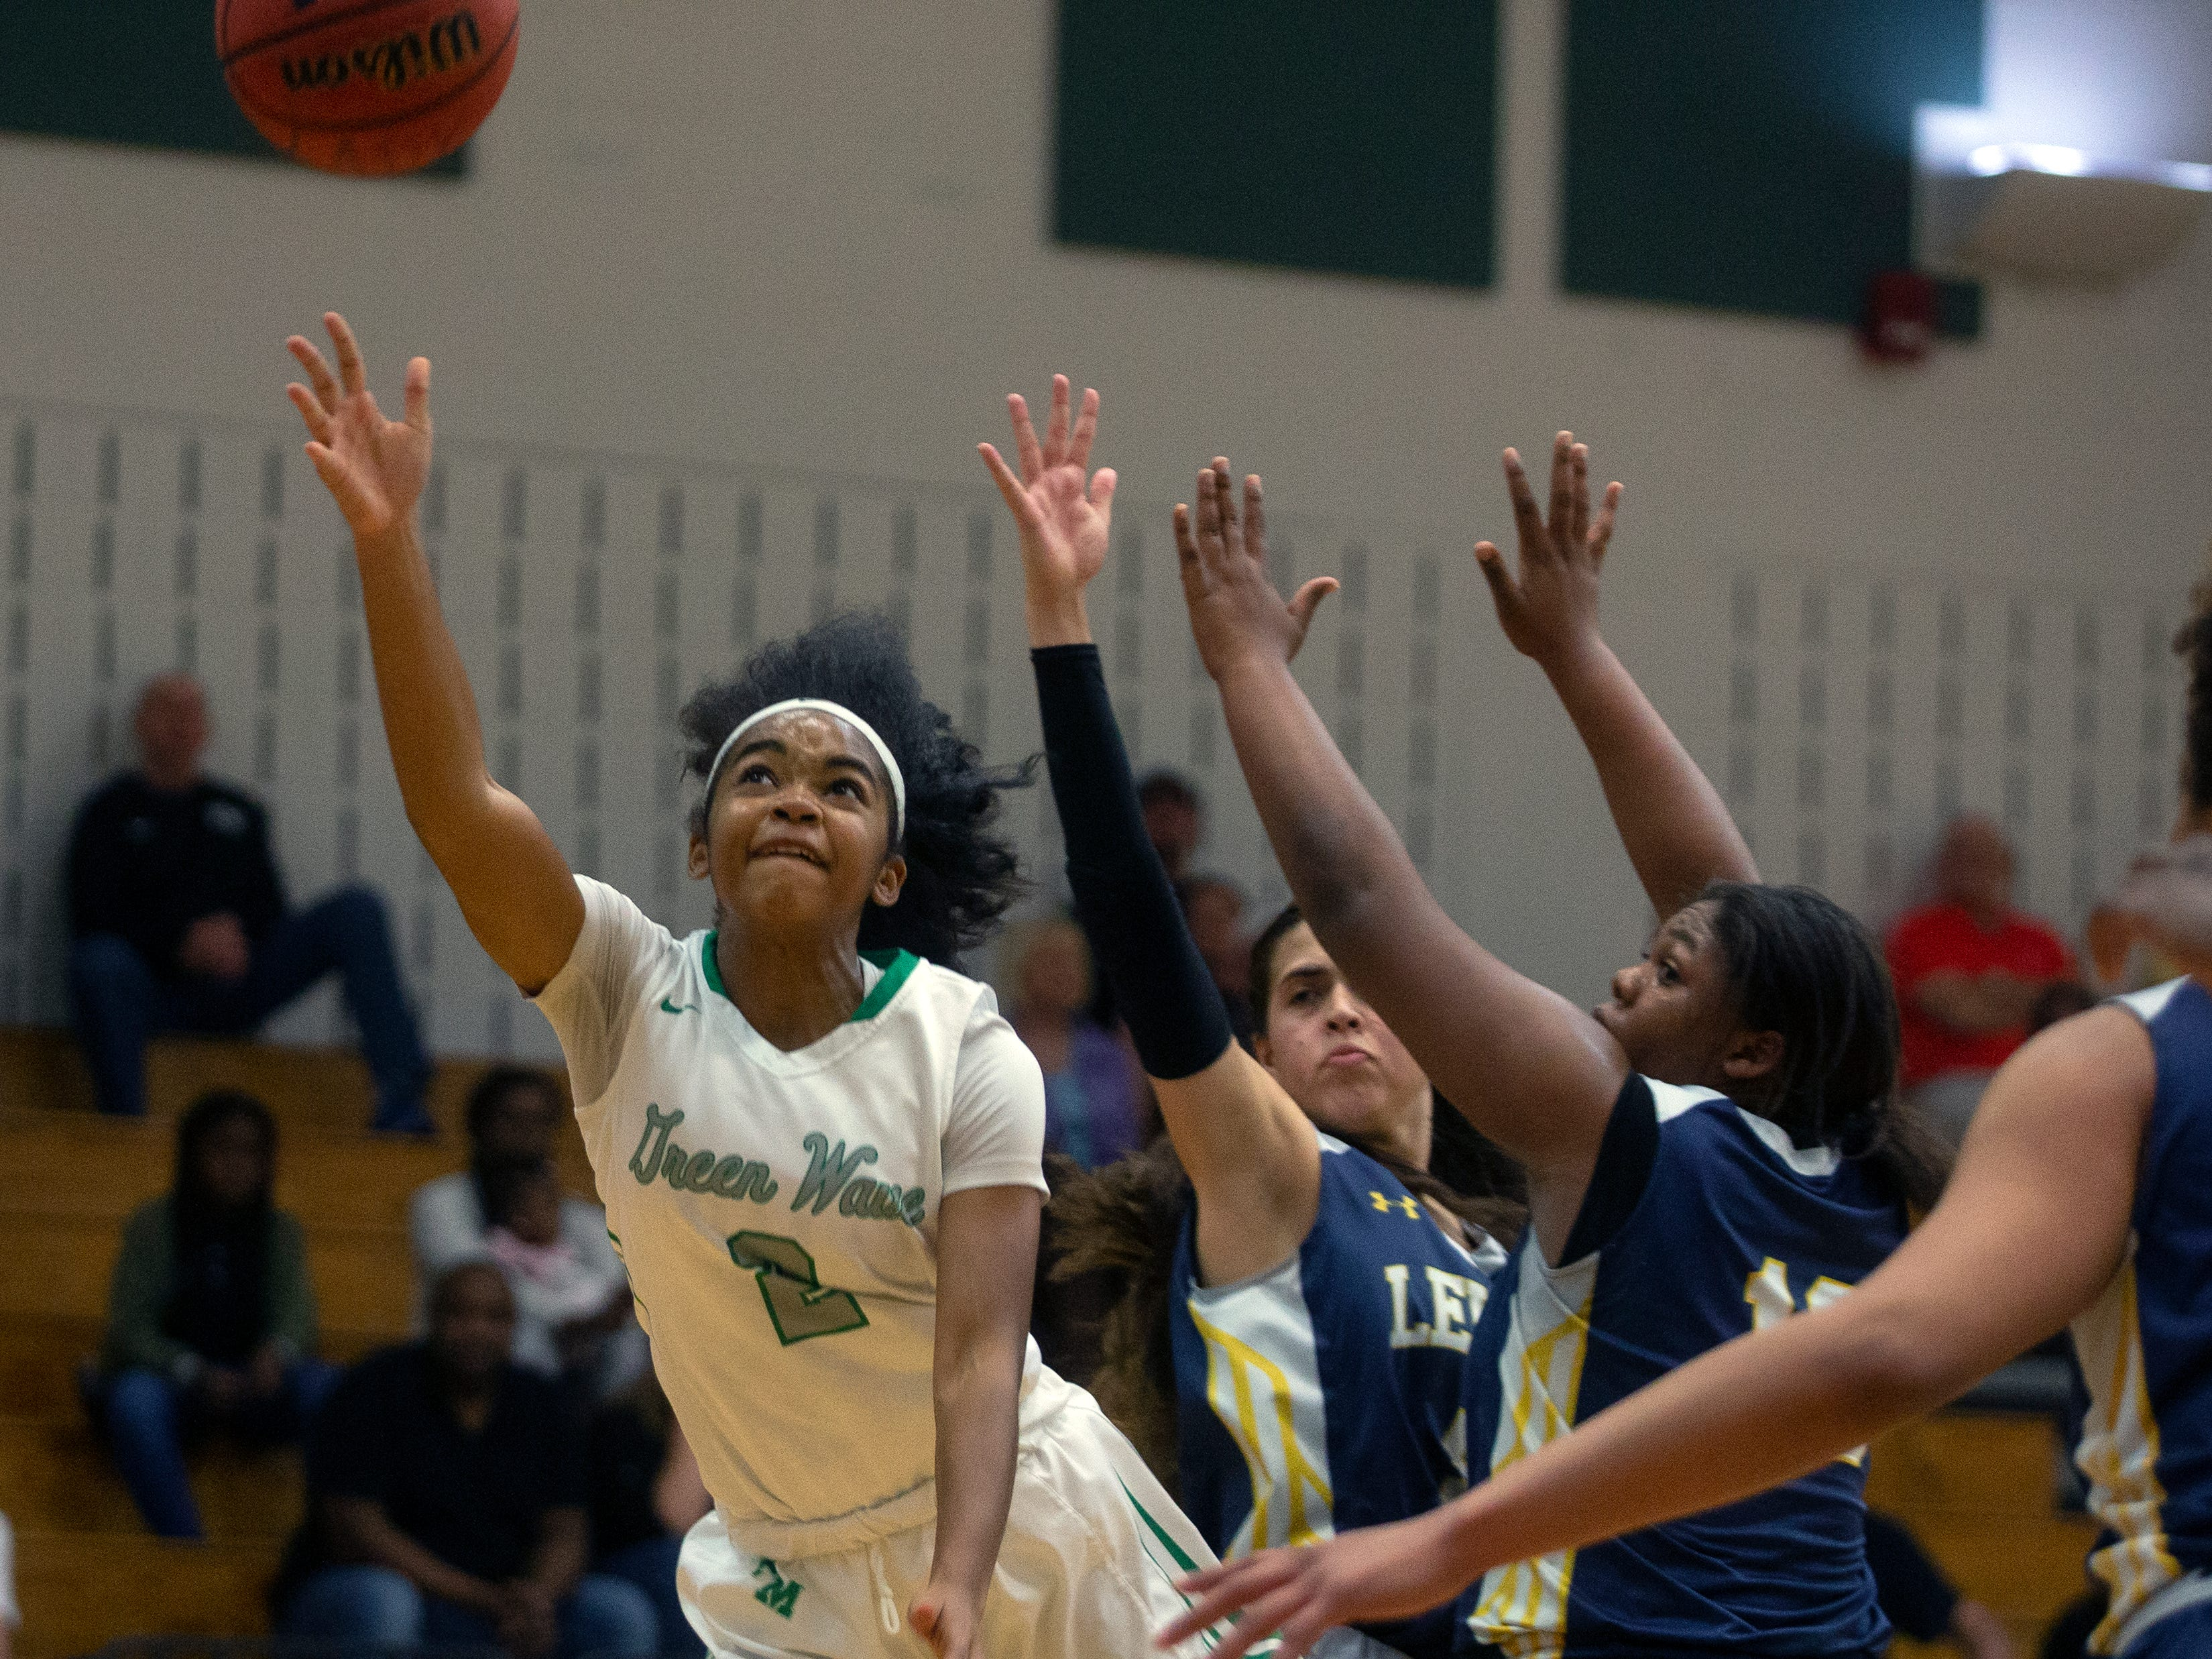 Fort Myers's Janay Outten attempts a shot against Lehigh, Friday, Feb. 8, 2019, at Dunbar High School in Fort Myers.